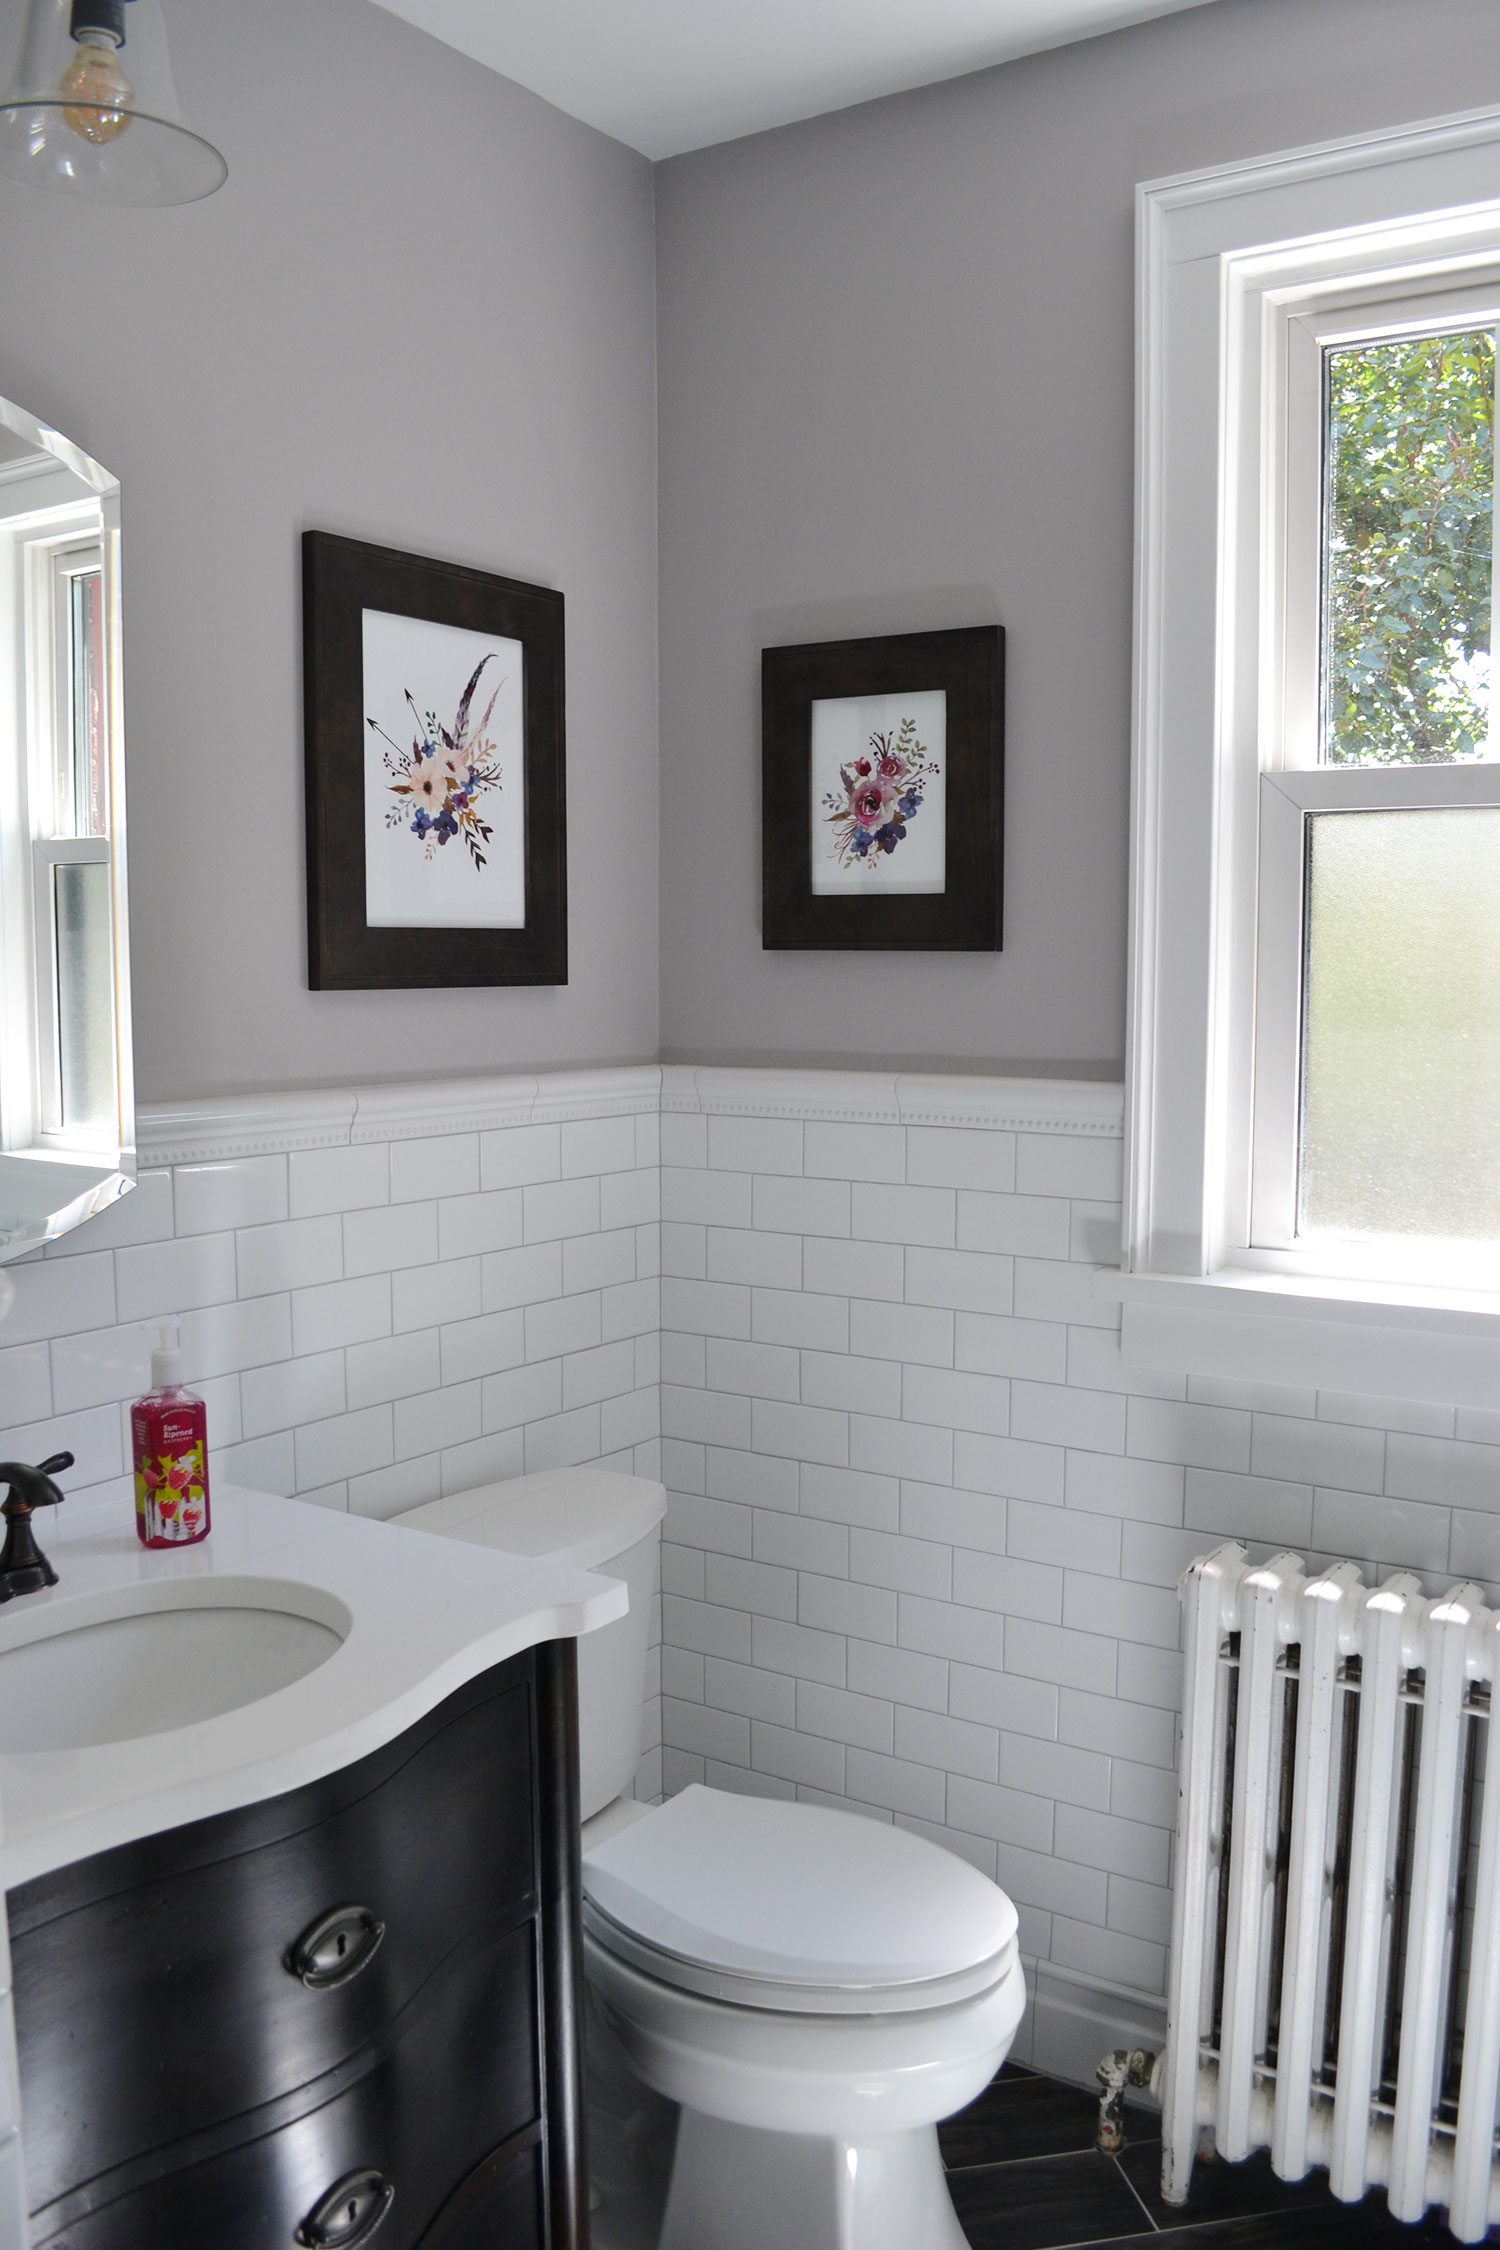 a bathroom remodel reveal contractors peach sweet is life as makeover